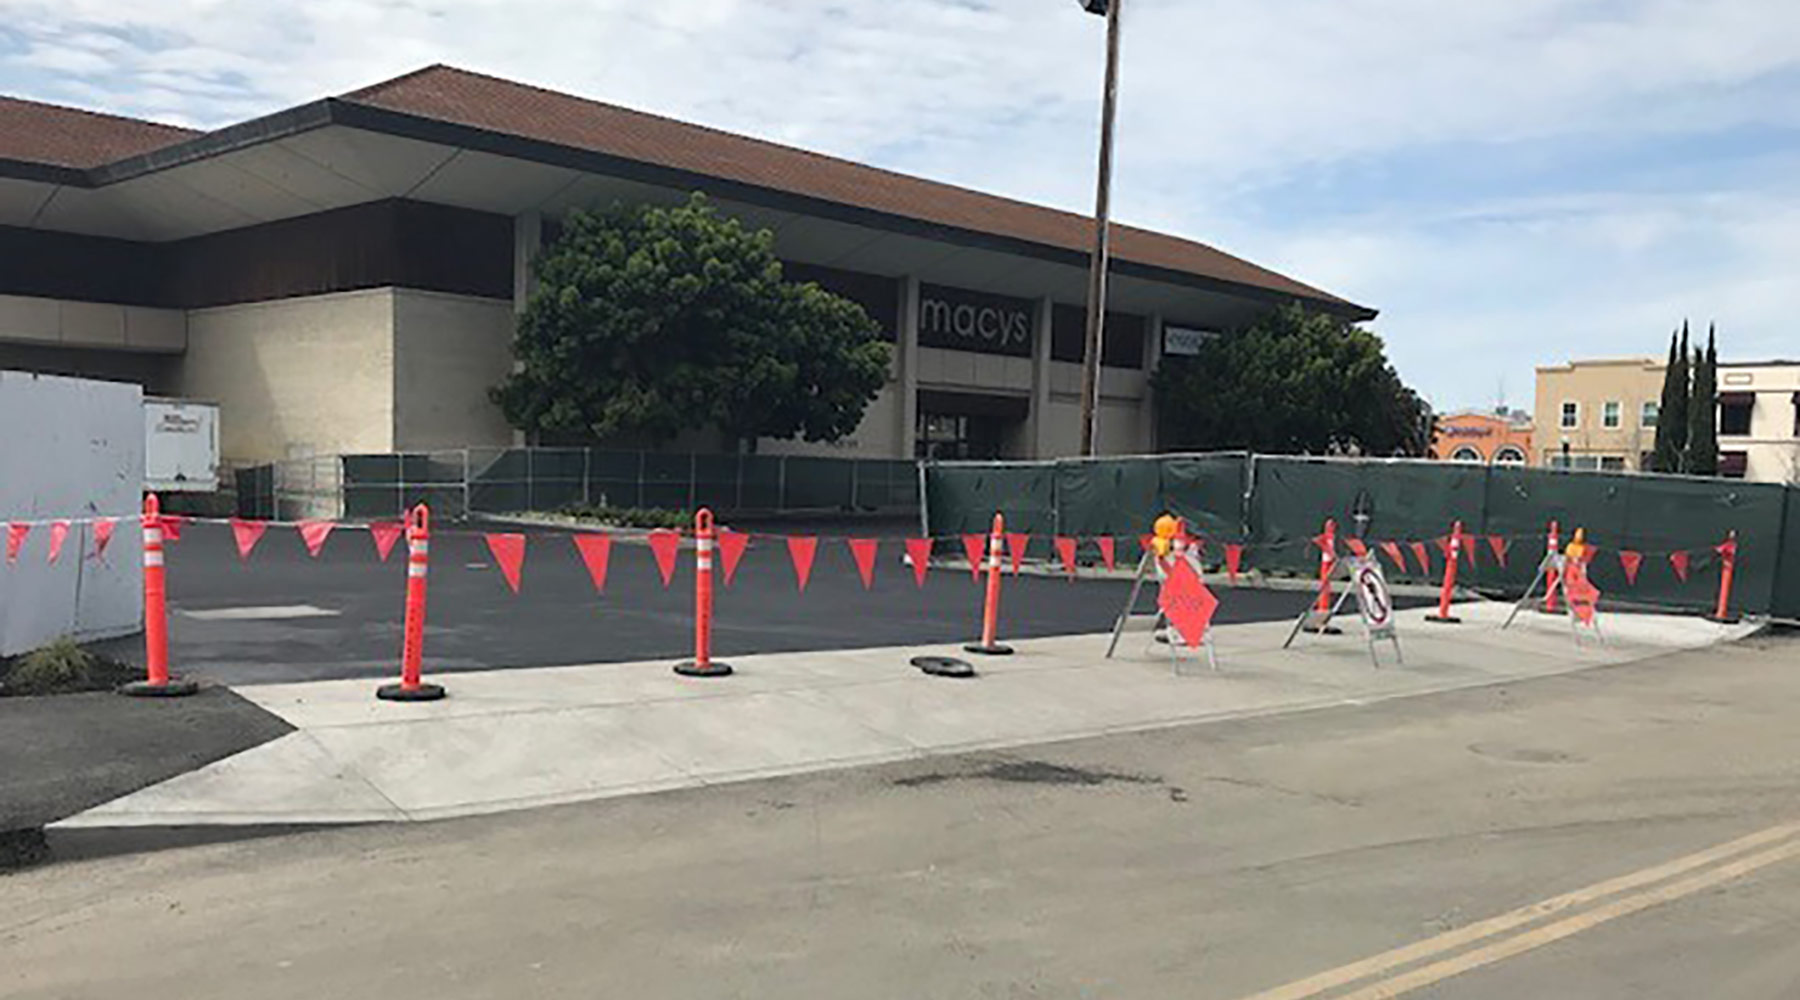 New Murphy Avenue paved and striped. New entrance to Macy's loading dock poured.